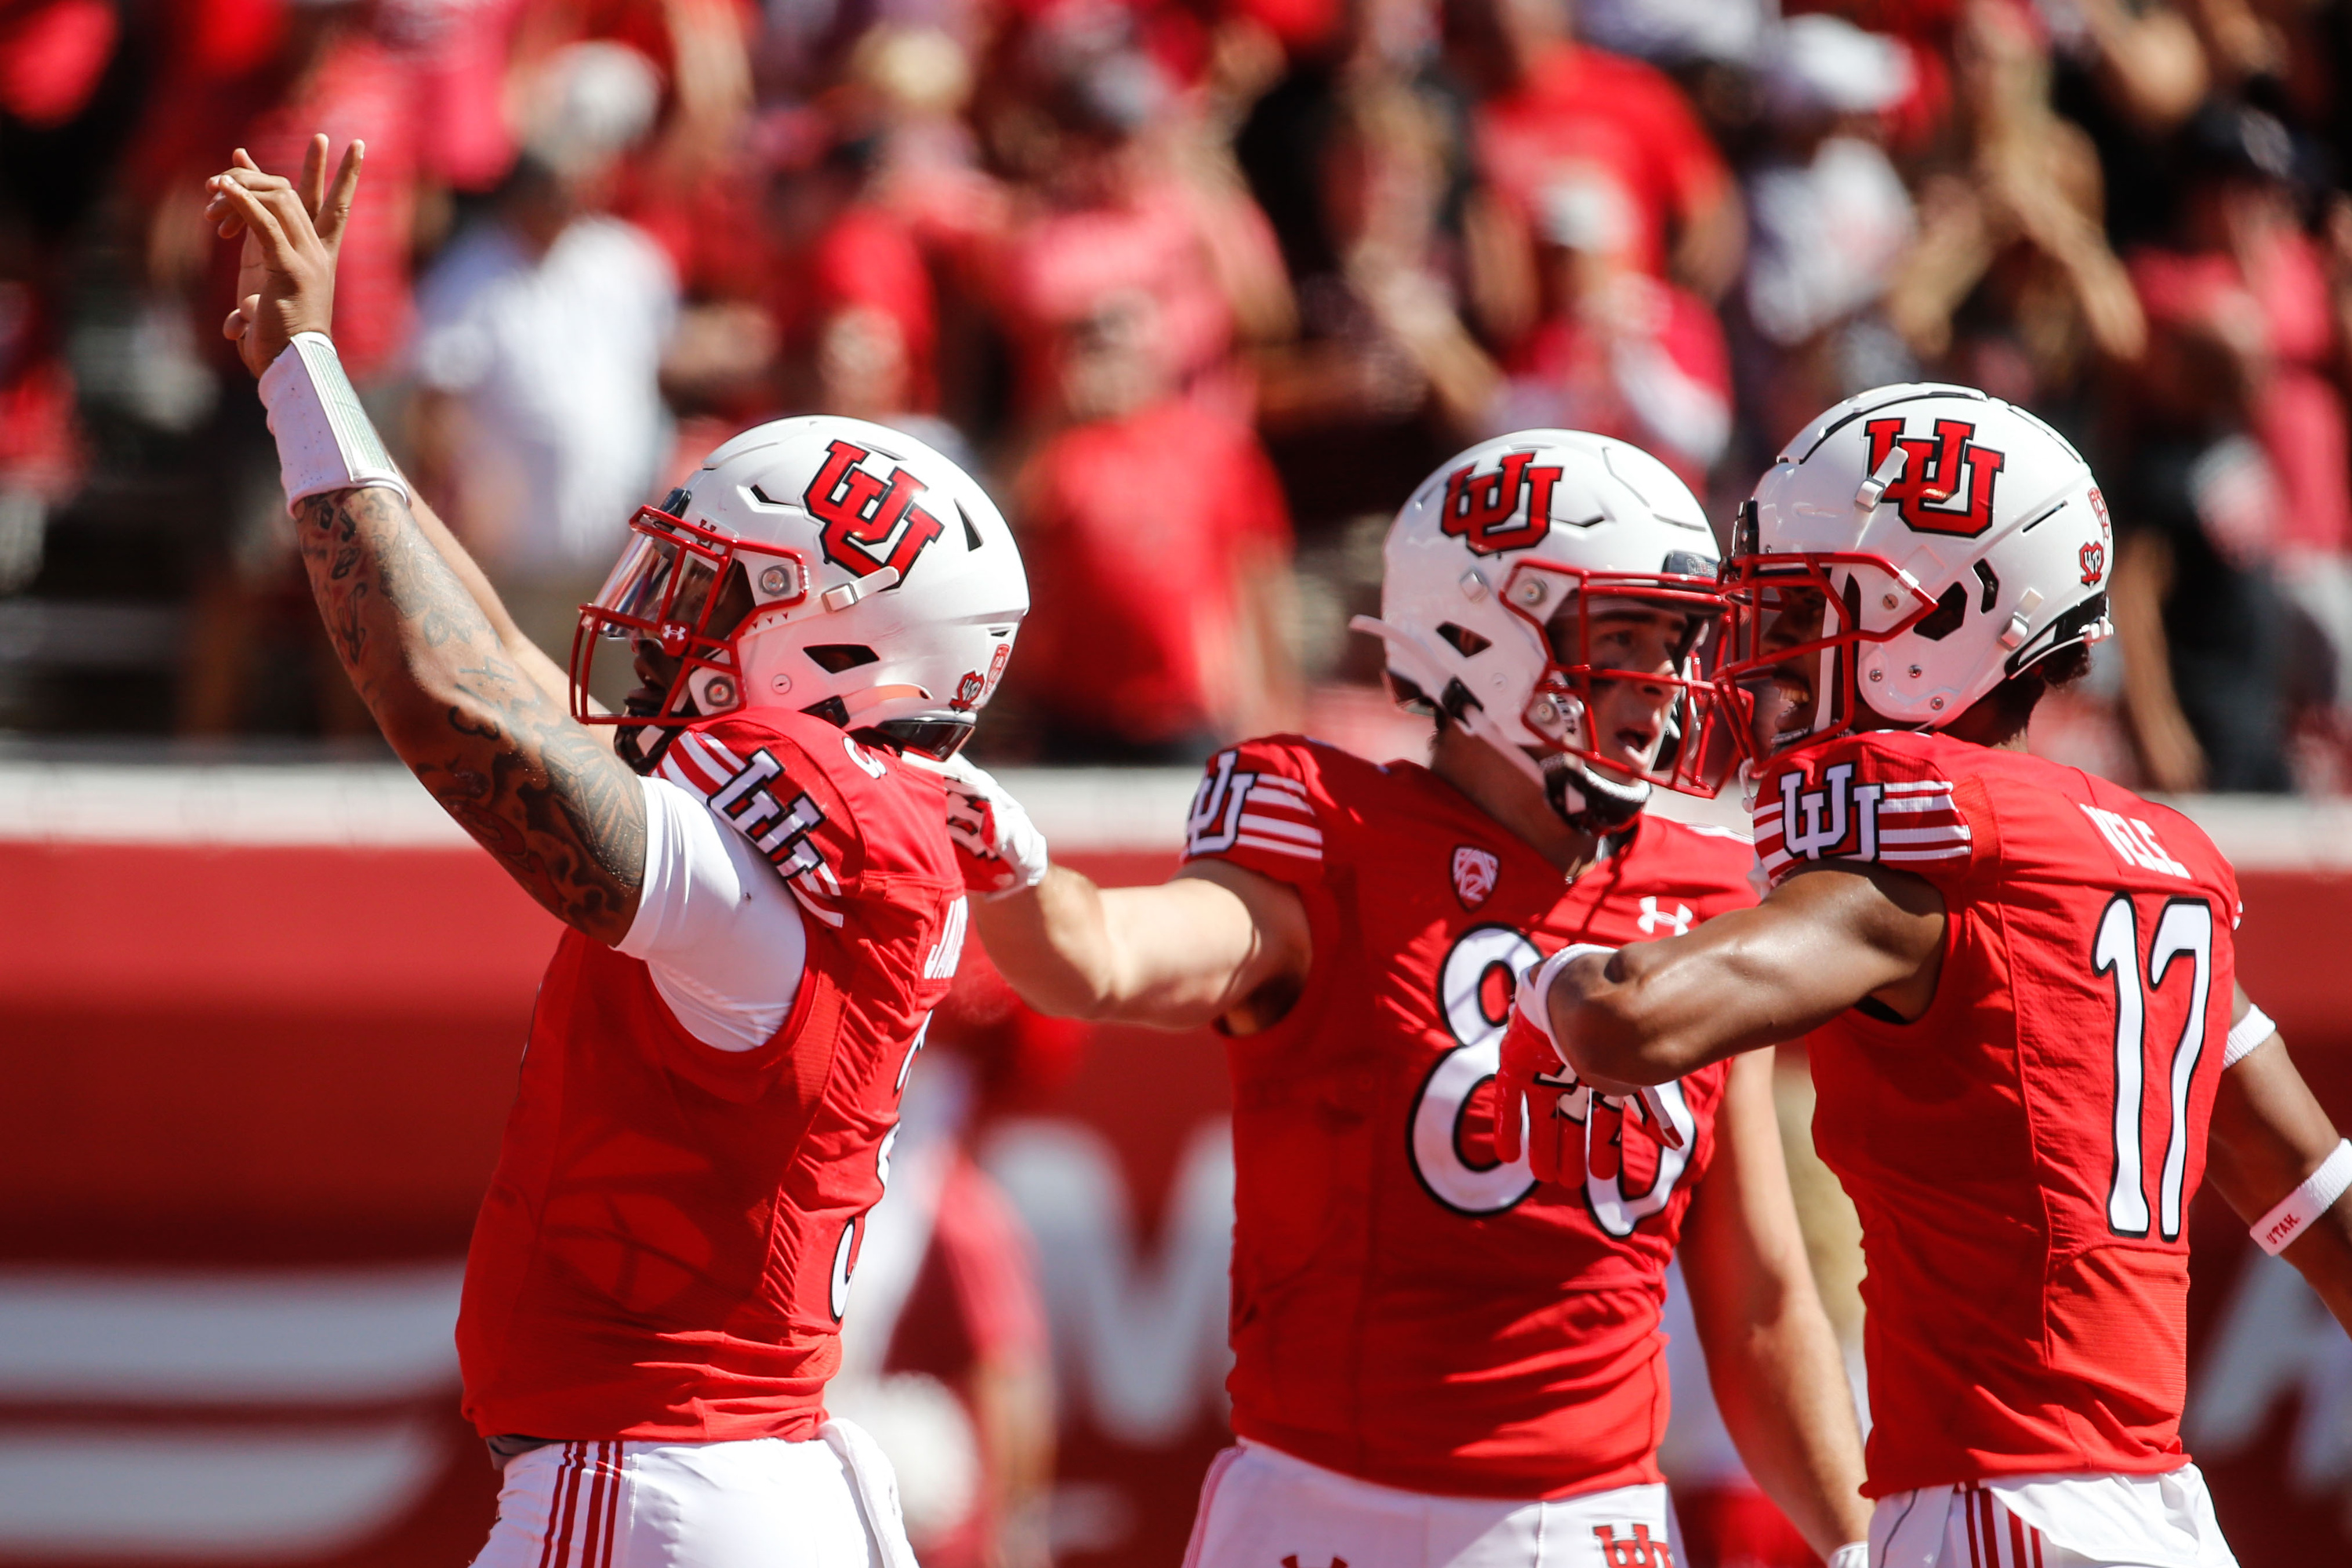 Utah quarterback Ja'Quinden Jackson, left, celebrates with his teammates after their first touchdown during an NCAA college football game against Washington State at Rice-Eccles Stadium on Saturday, Sept. 25, 2021 in Salt Lake City.